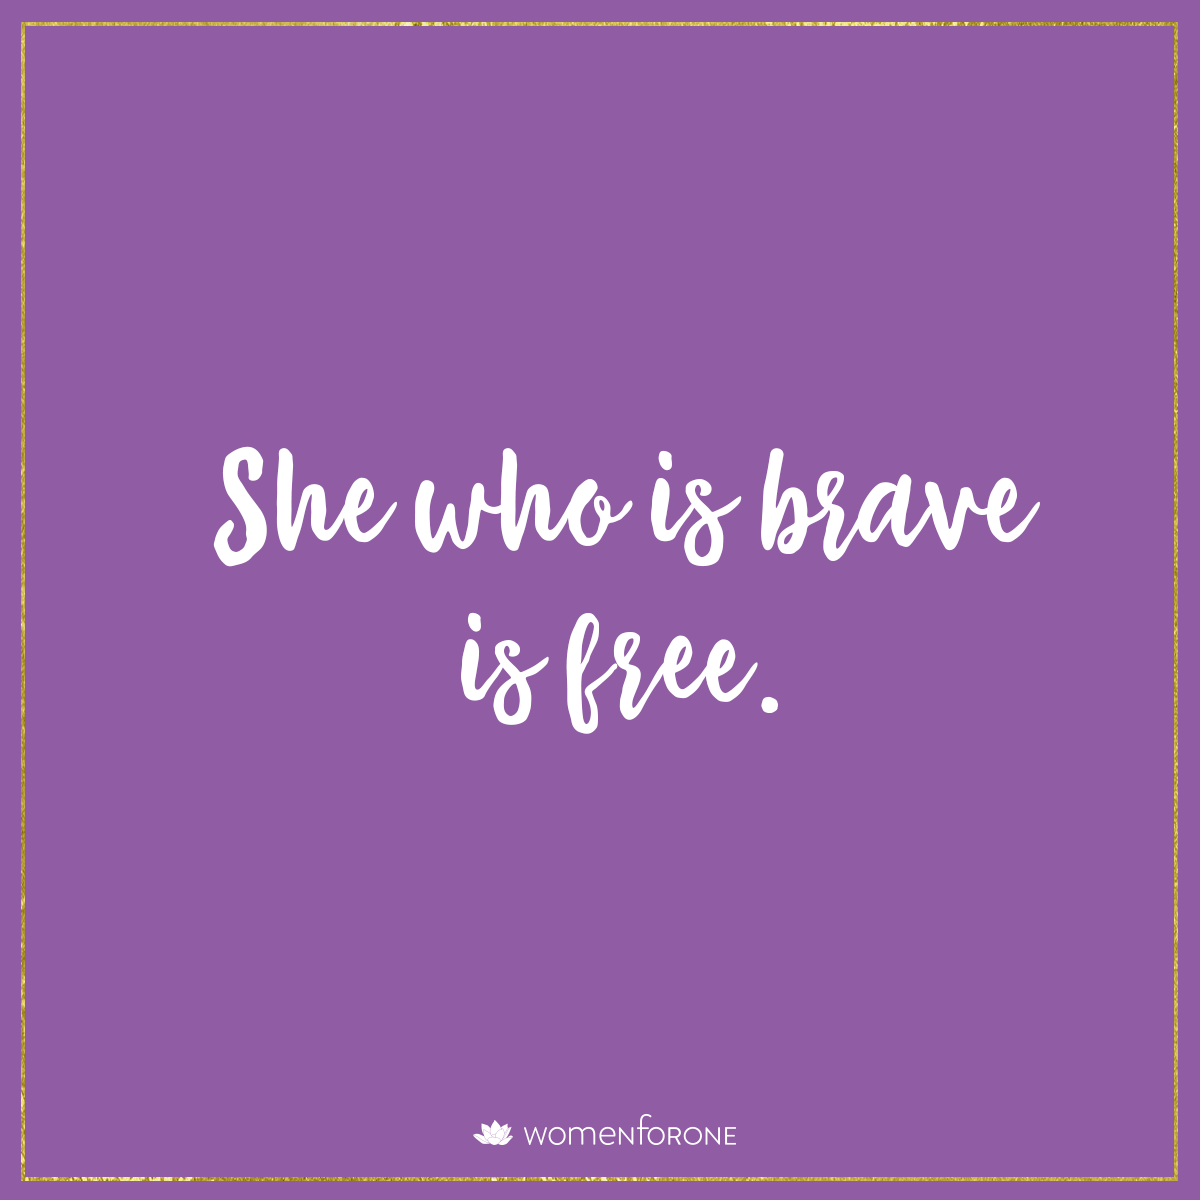 She who is brave is free | Women For One